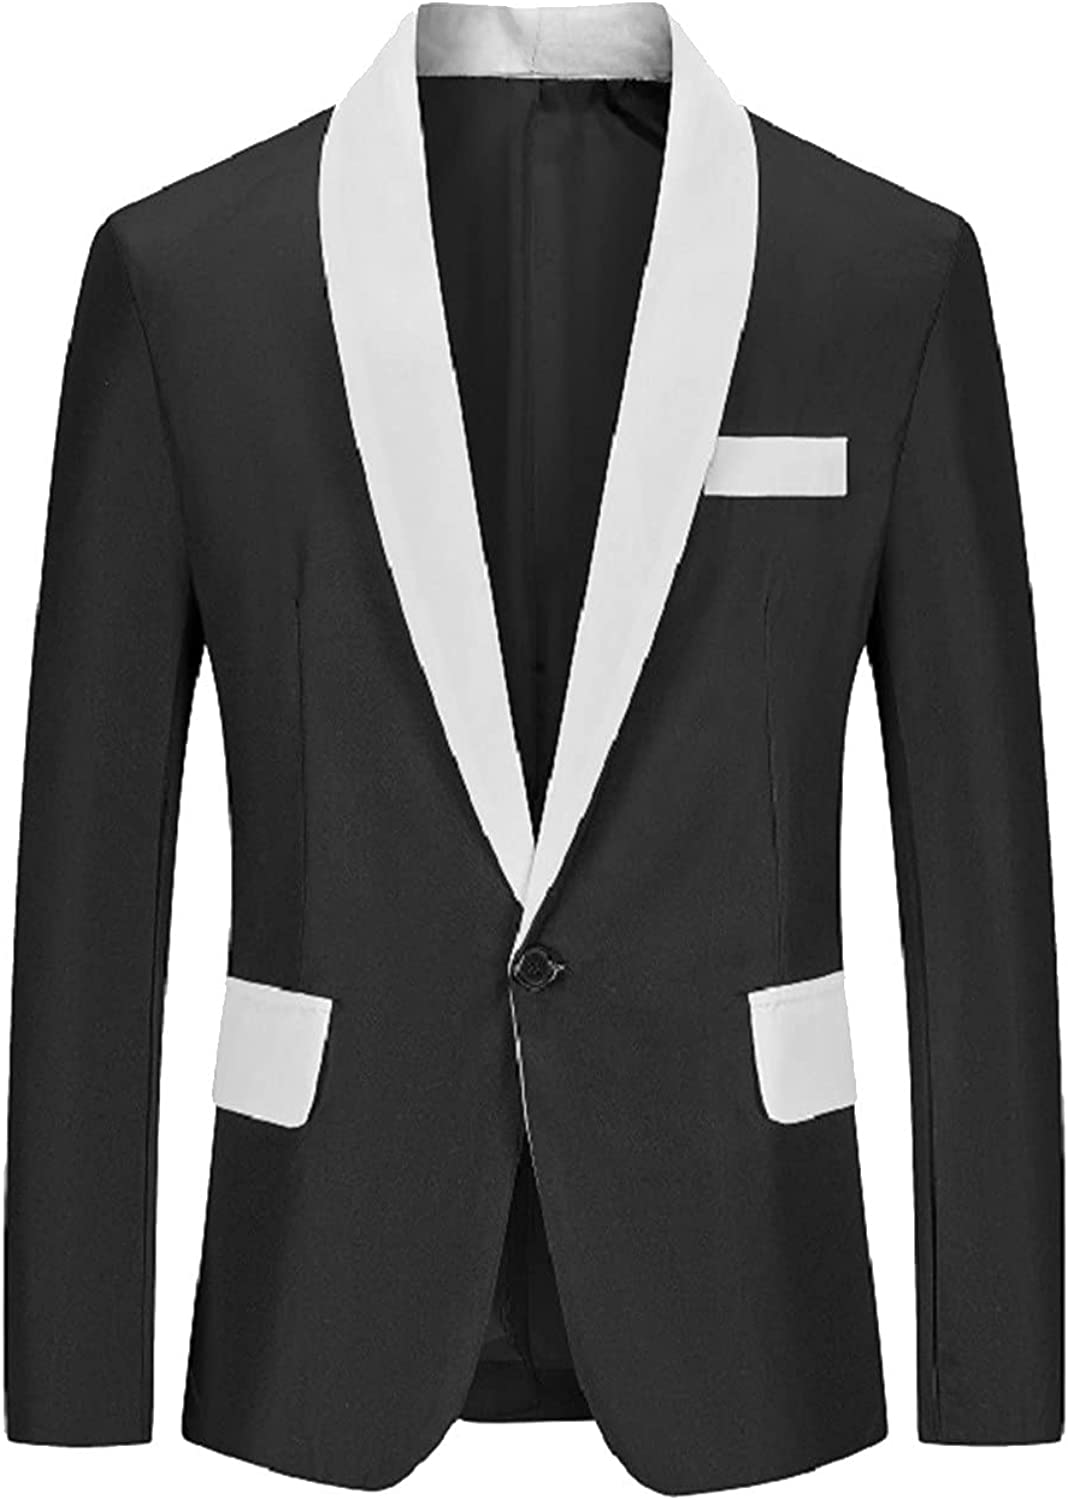 2021 Fashion Suit for Men's Premium Business Blazer England Style Slim Formal Coat Jacket for Wedding and Party